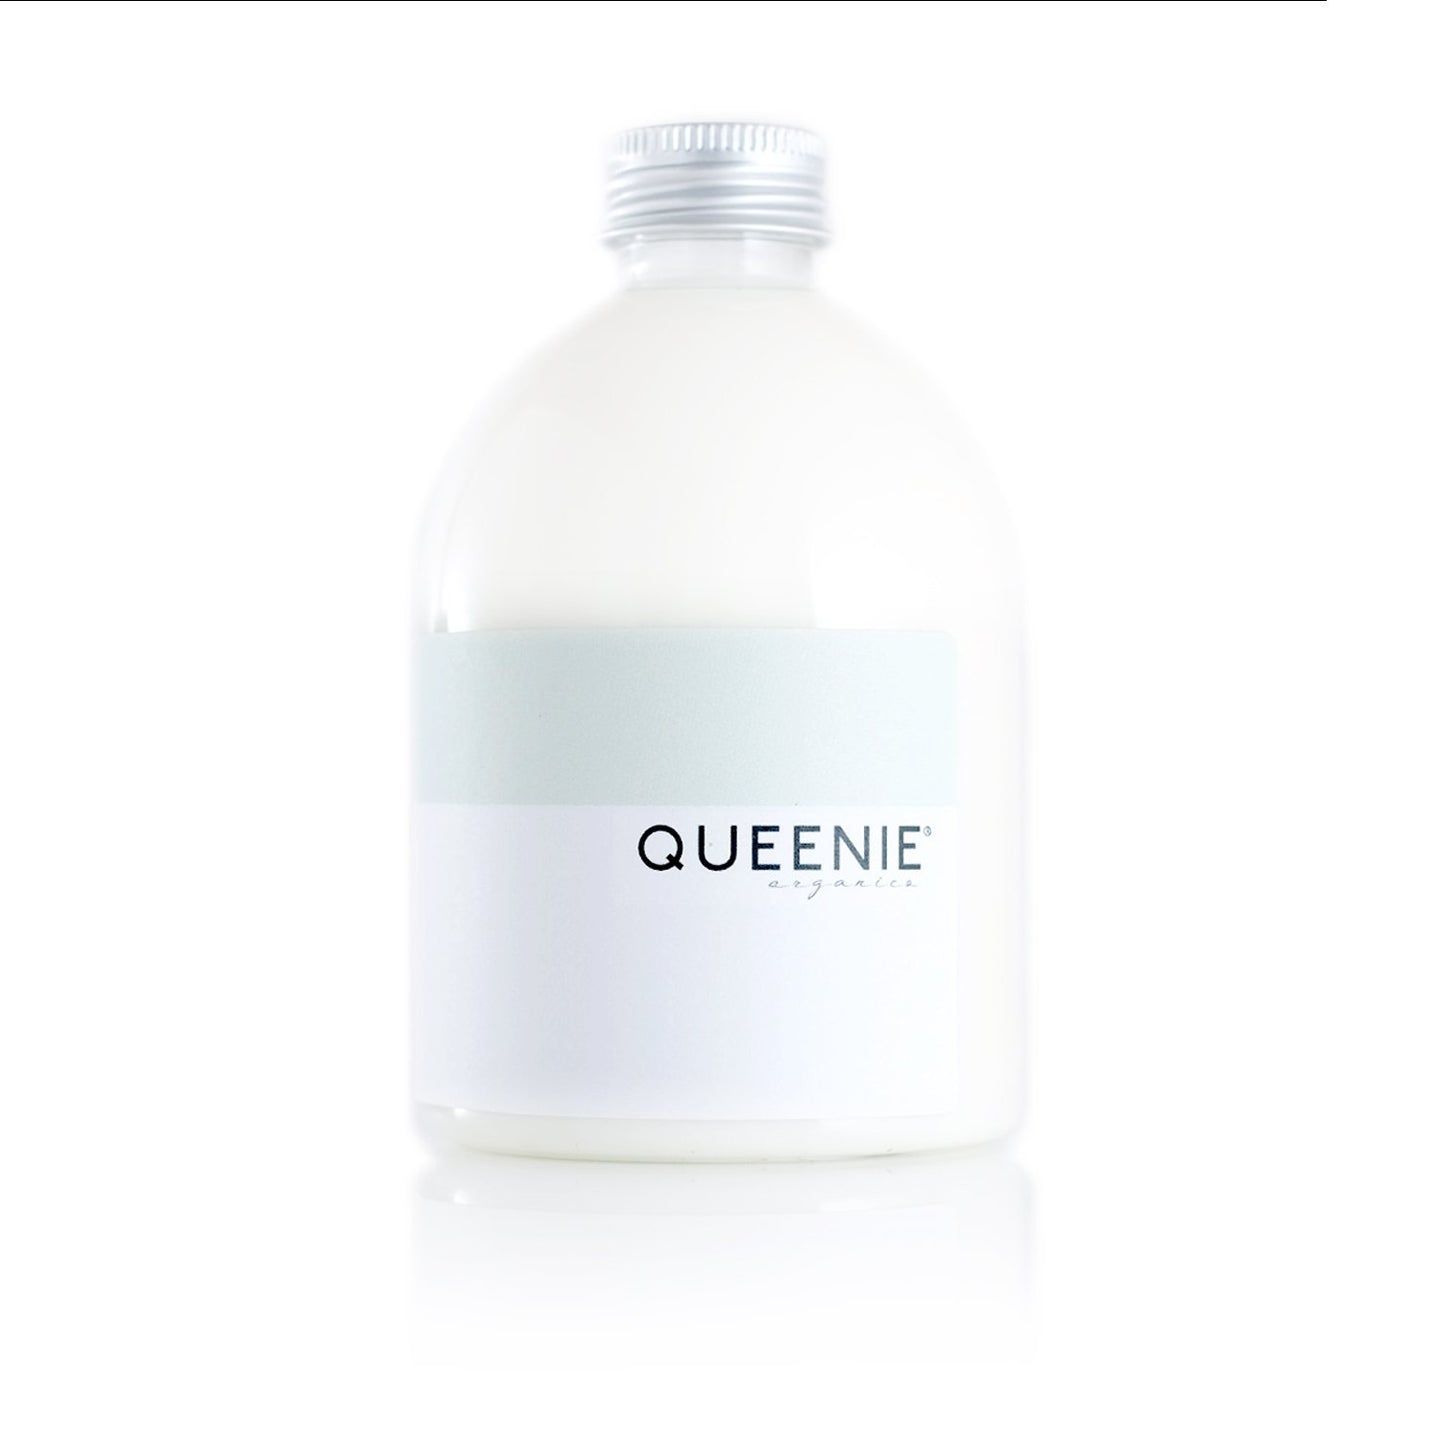 BABY SAFE/FRAGRANCE FREE HAND & BODY CREAM REFILL beauty from Queenie Organics curated by pu·rist